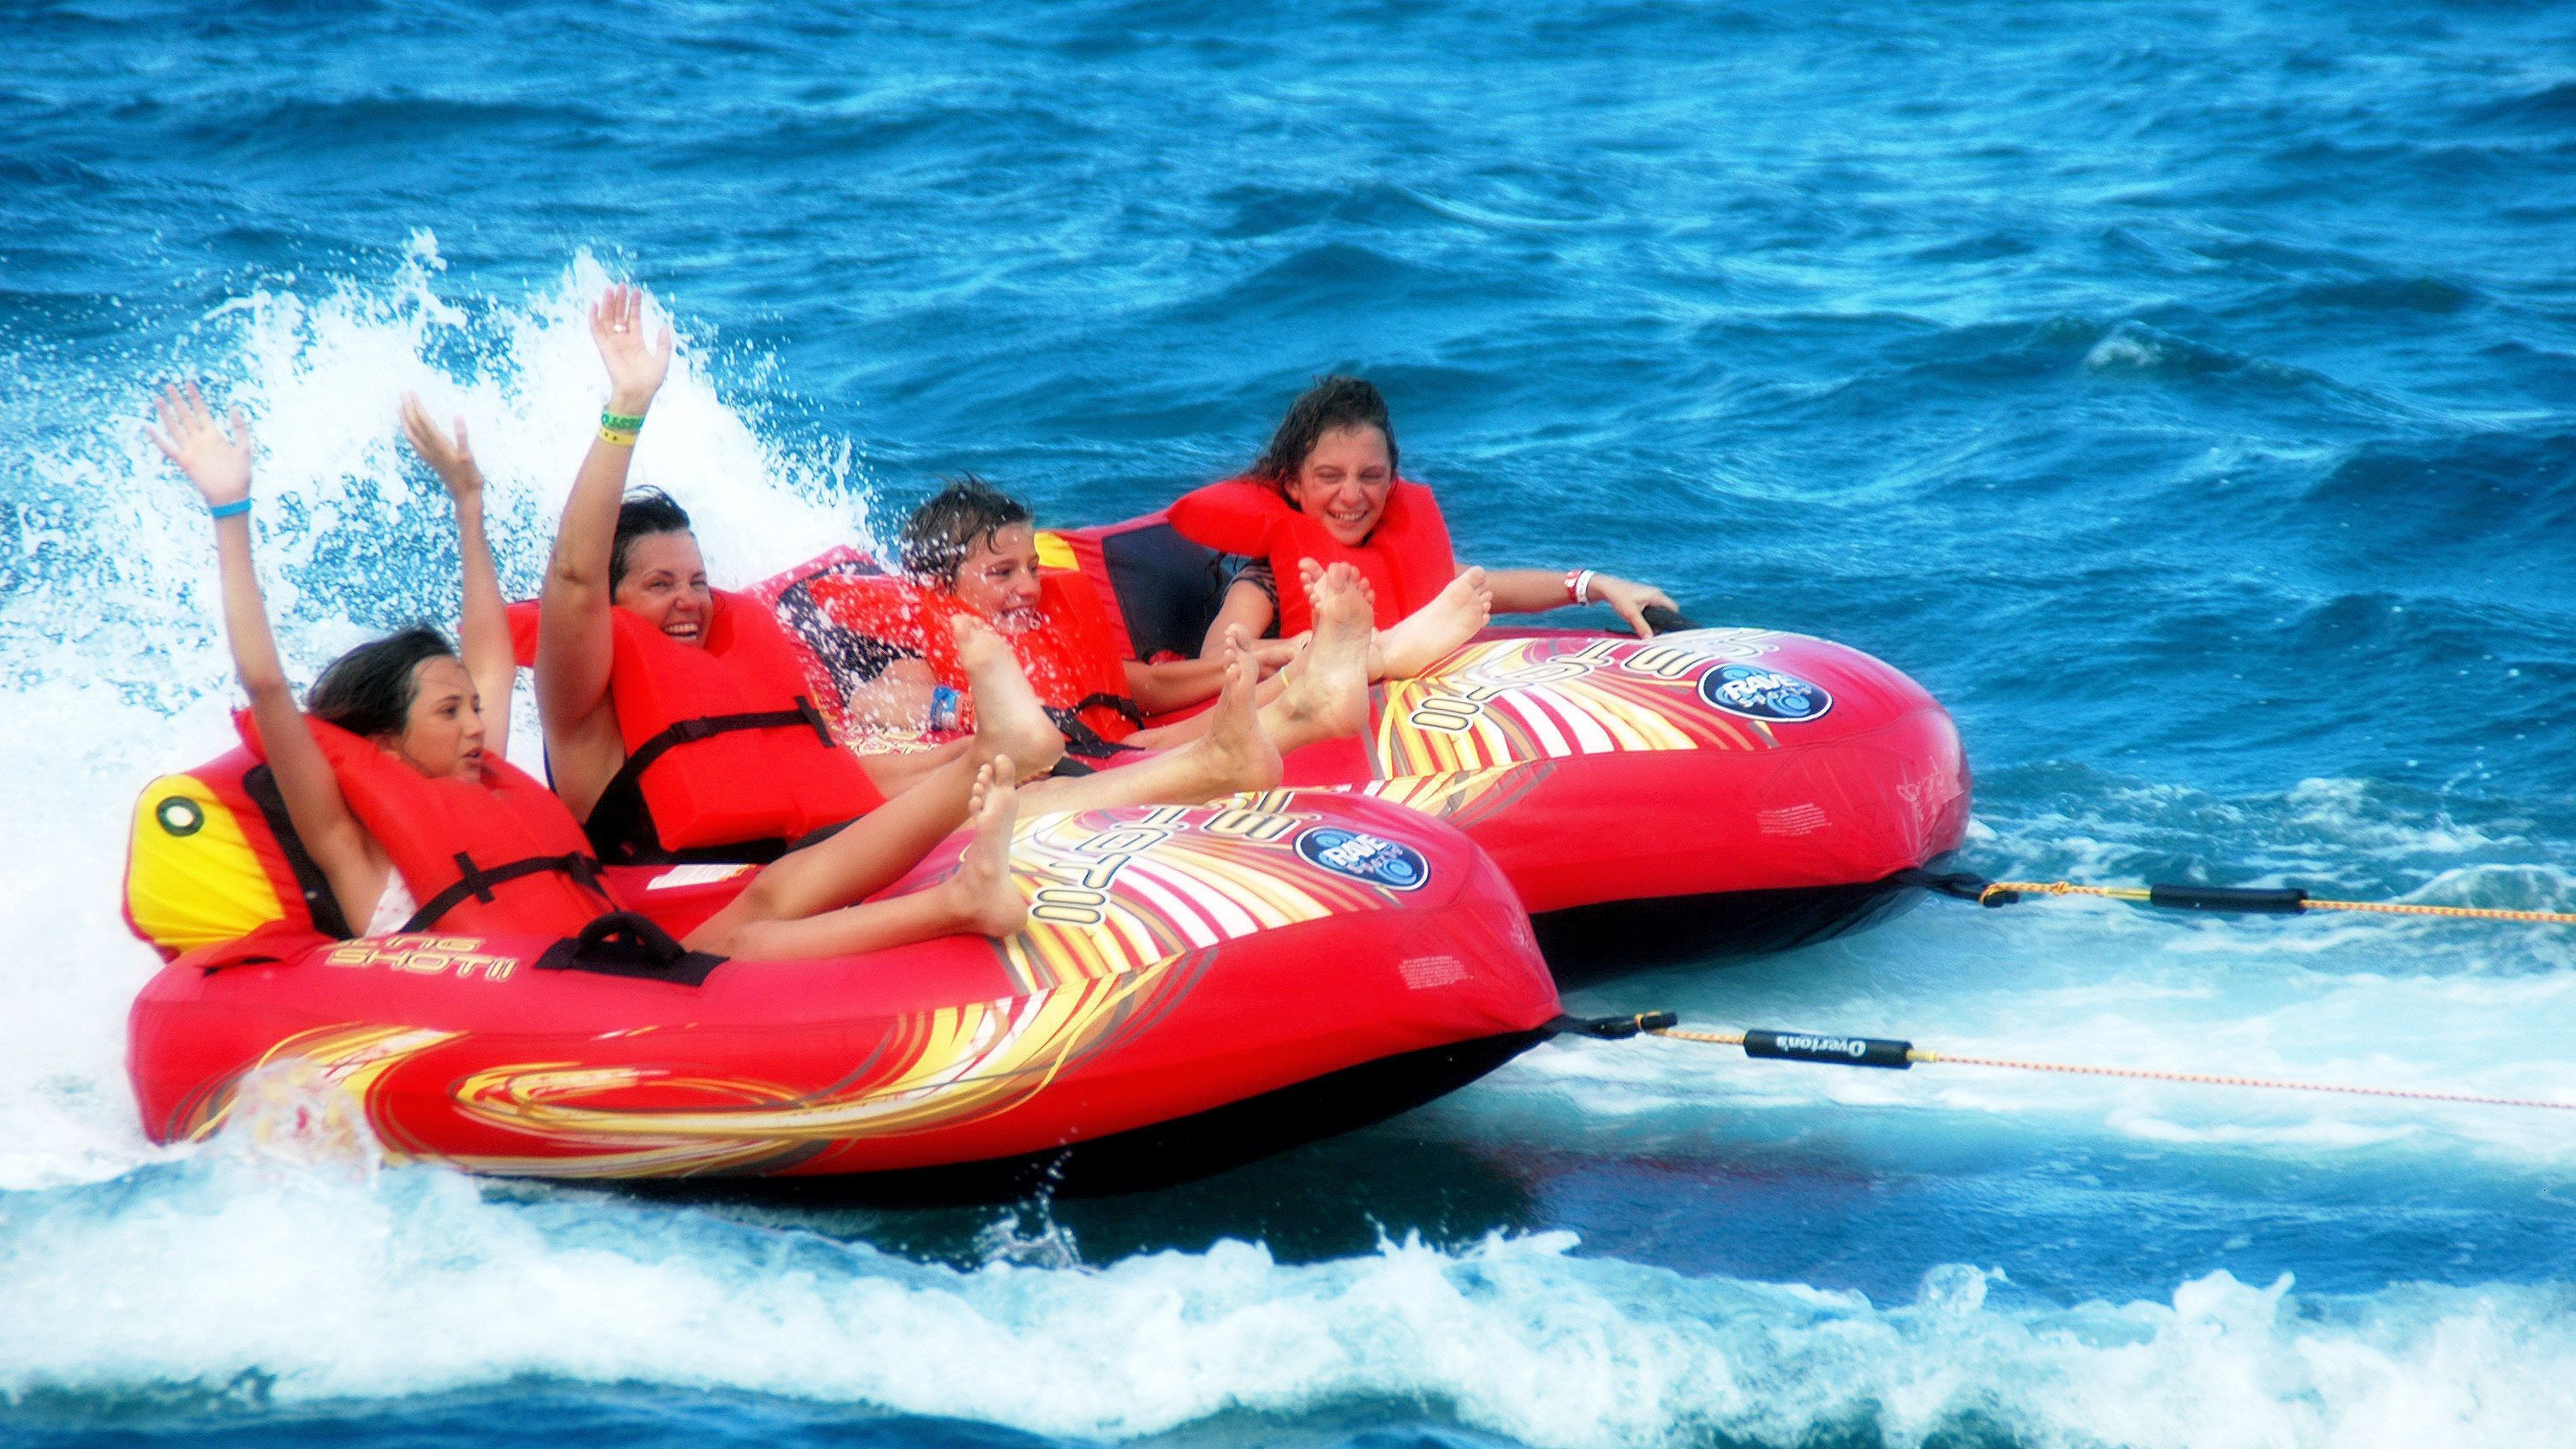 People riding on inflatables in Punta Cana